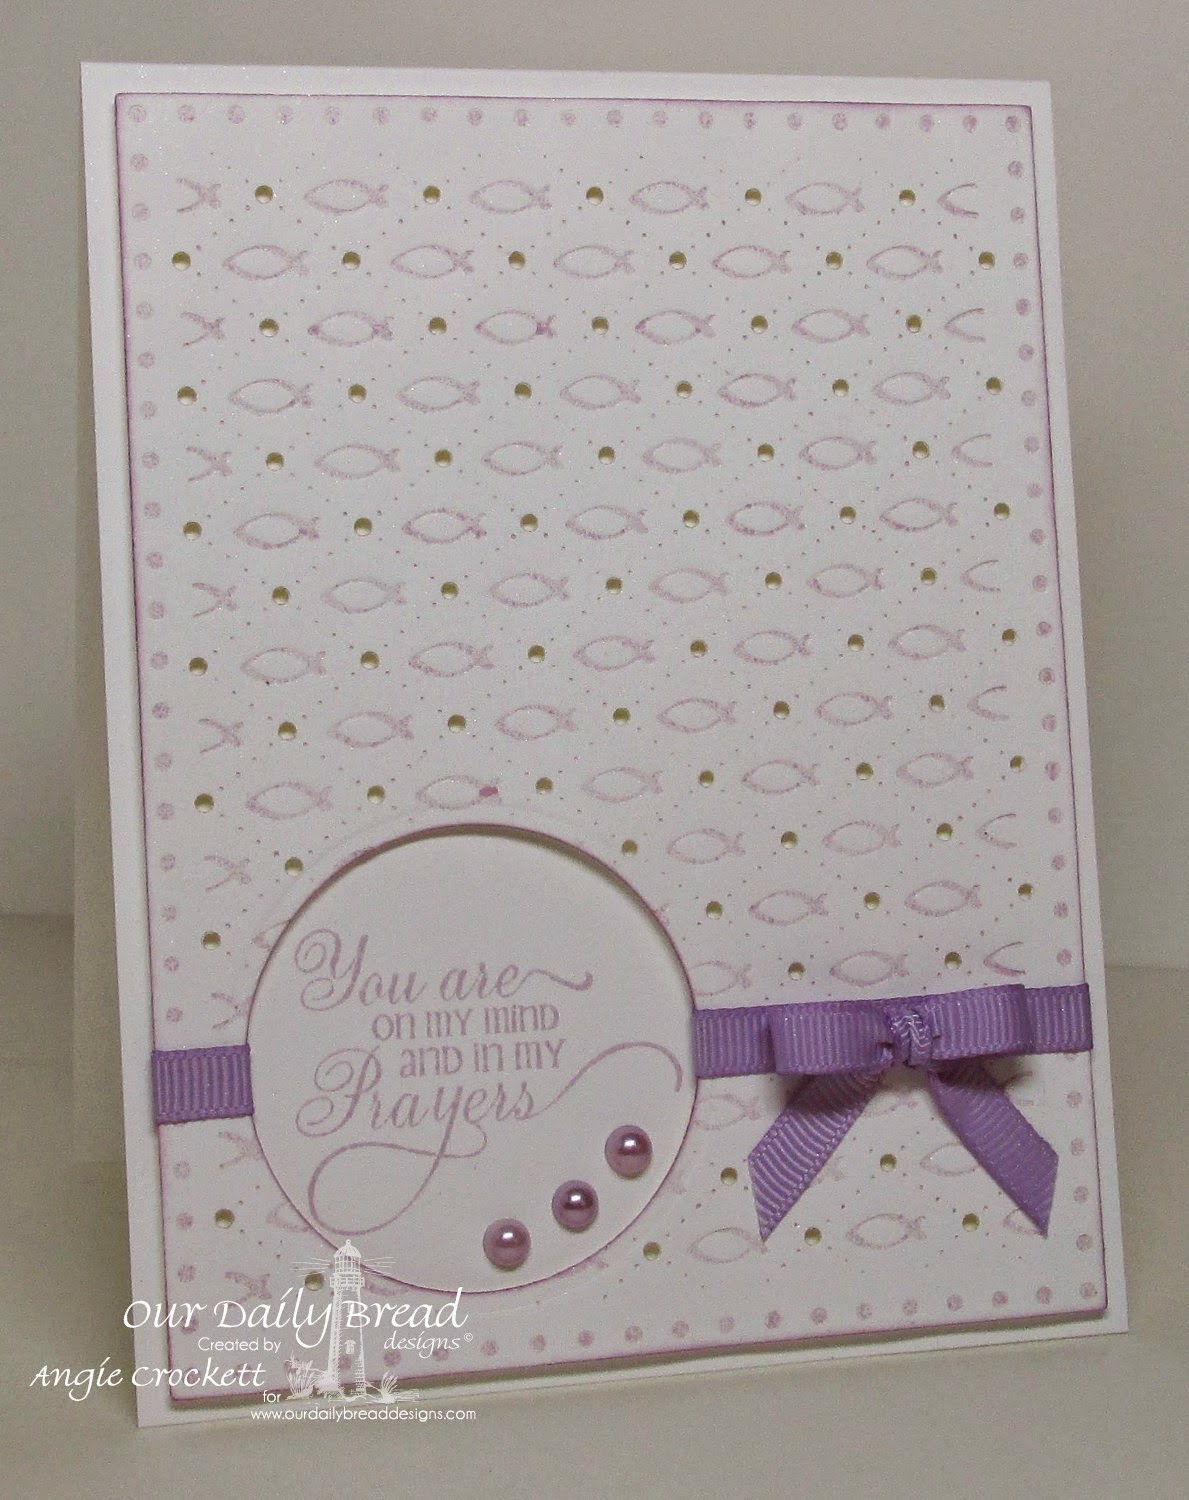 ODBD Faithful Fish Pattern Die and Debossing Plate, Flourished Verses, Card Designer Angie Crockett